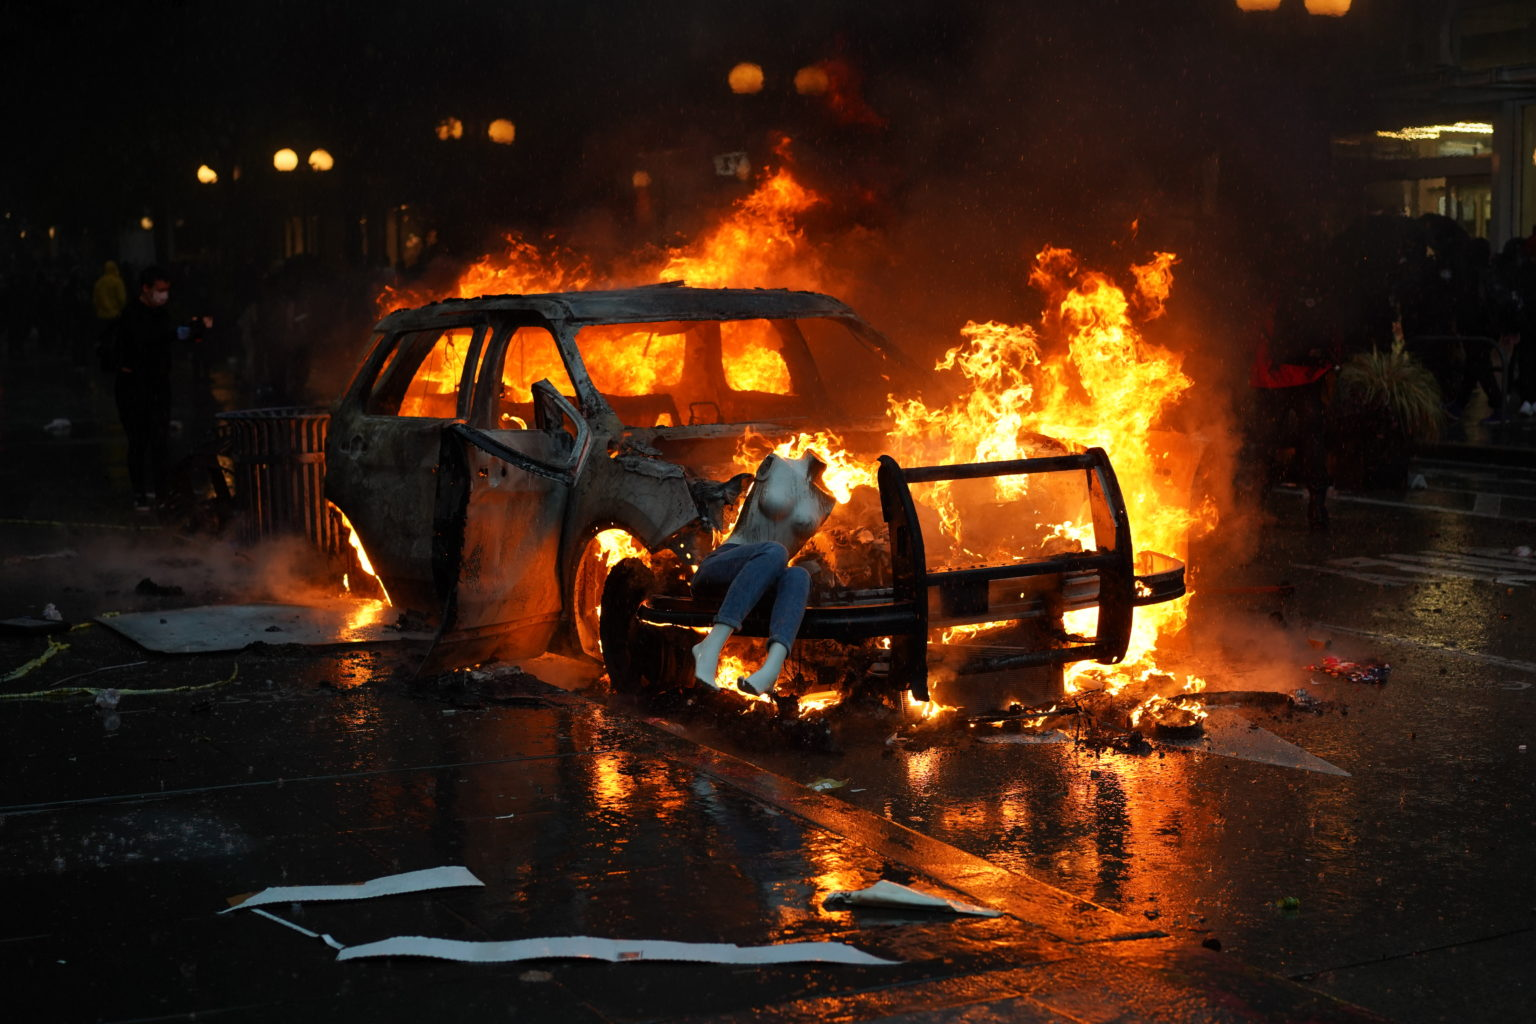 In Seattle, riot and attack police, then file a lawsuit against them for using force